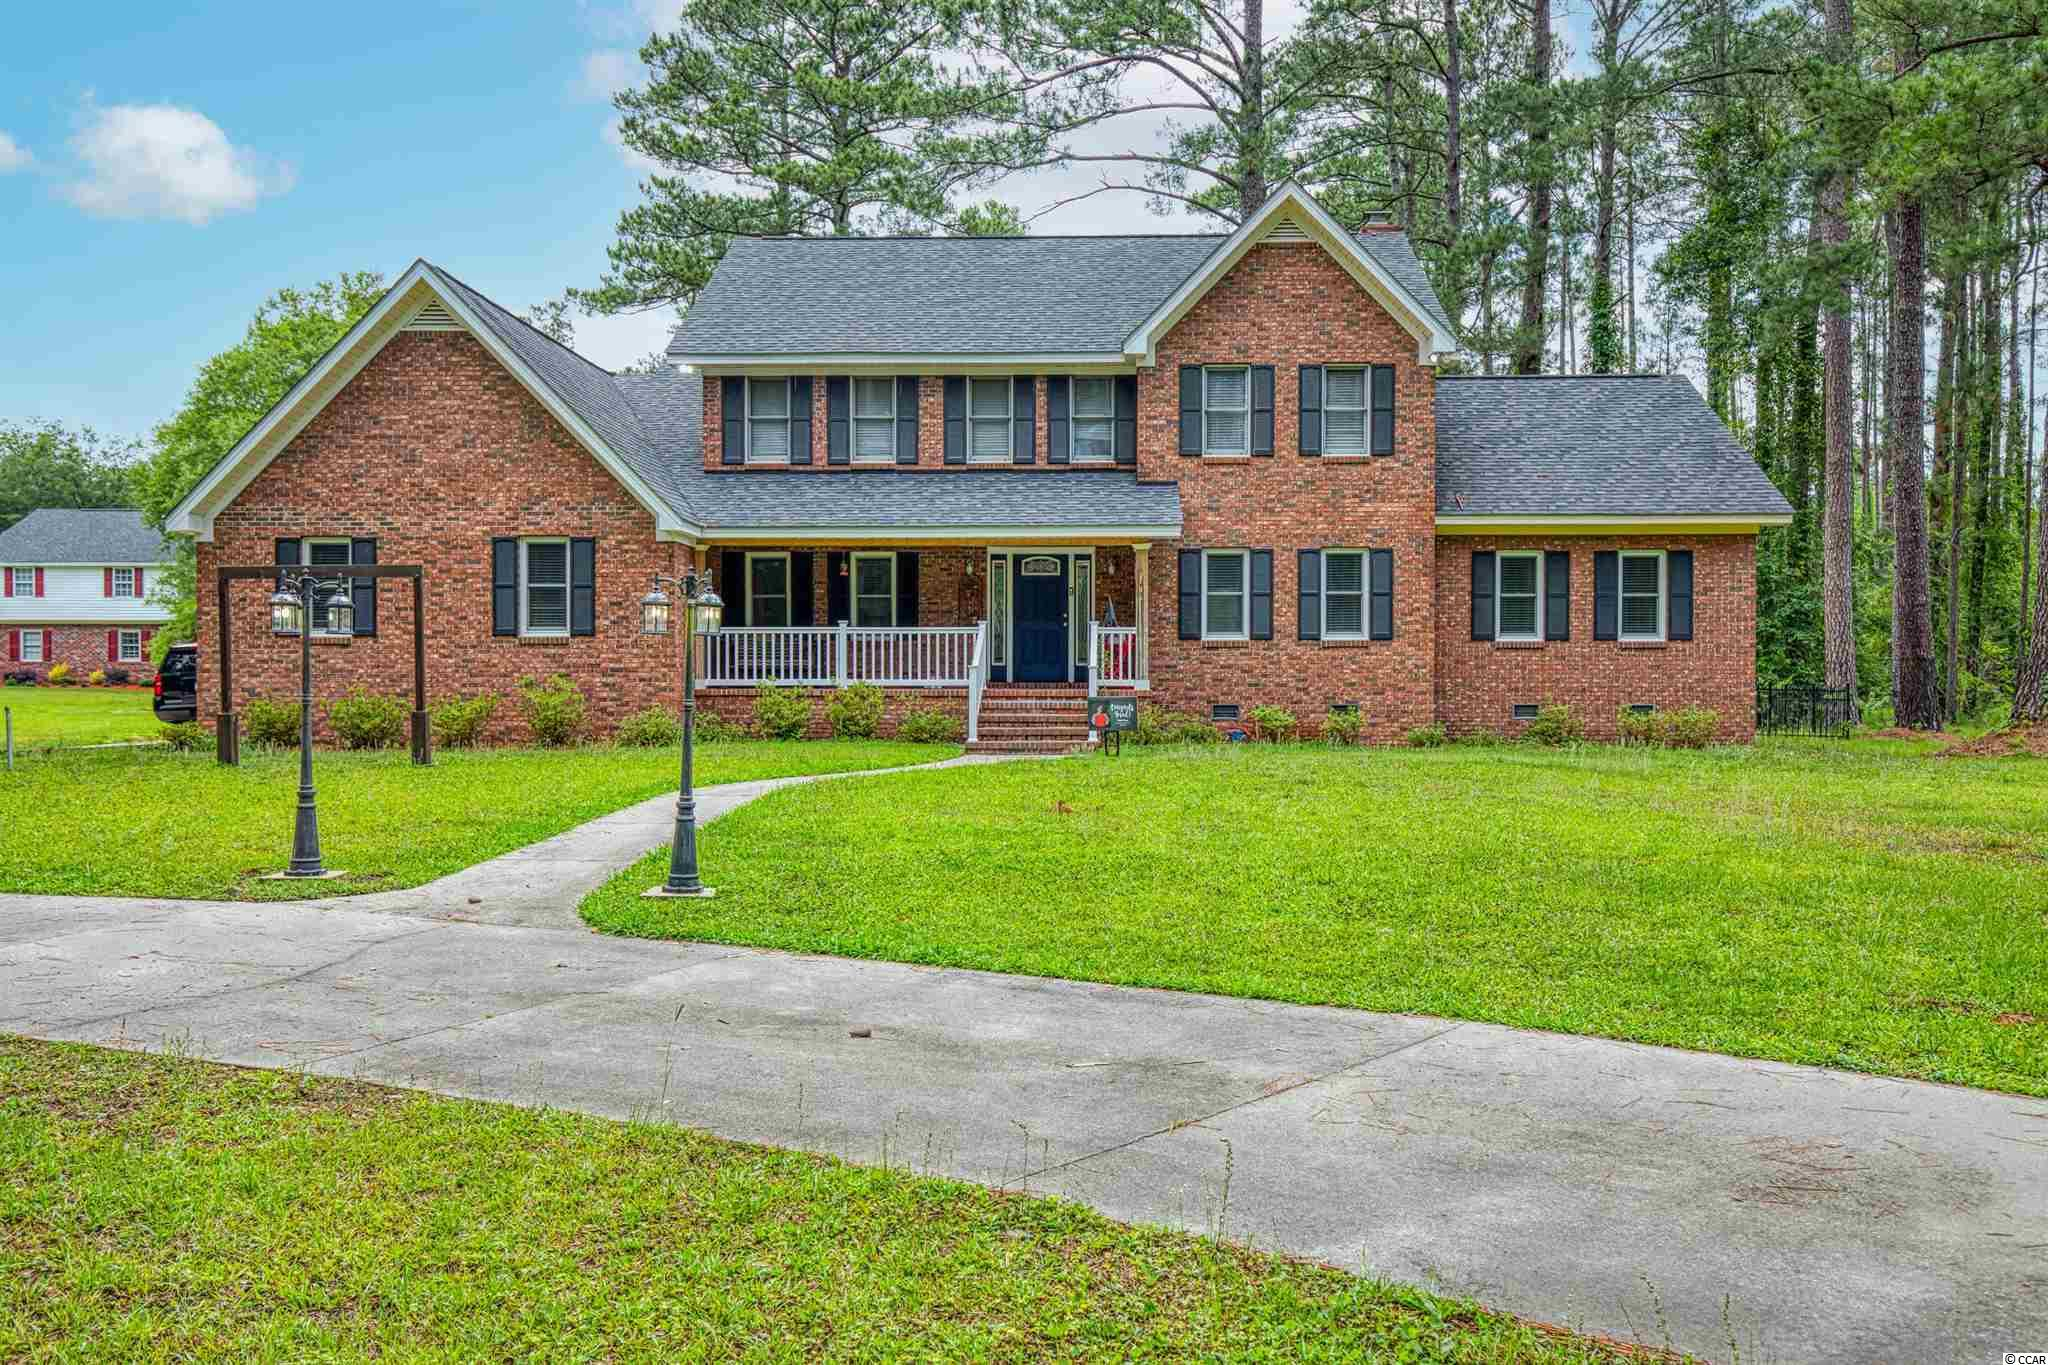 Welcome to this huge, all brick home in the heart of Conway! This property has a circular driveway, side parking, a large fenced in backyard, a bonus room, first-floor master suite and more! Once entering you'll appreciate this custom home and its open floor plan downstairs. Master, full bath and half bath located on the first floor. Upstairs includes other bedrooms and baths. It also has a bonus/play room that can be accessed through an upstairs bedroom! This spacious home is unique and unparalleled in Conway. Featured materials include but not limited to, granite countertops, shiplap, luxury vinyl, beam like ceiling, recessed ceiling lights and all brick exterior! Schedule your showing to see this beautiful home! Buyer to confirm square footage.